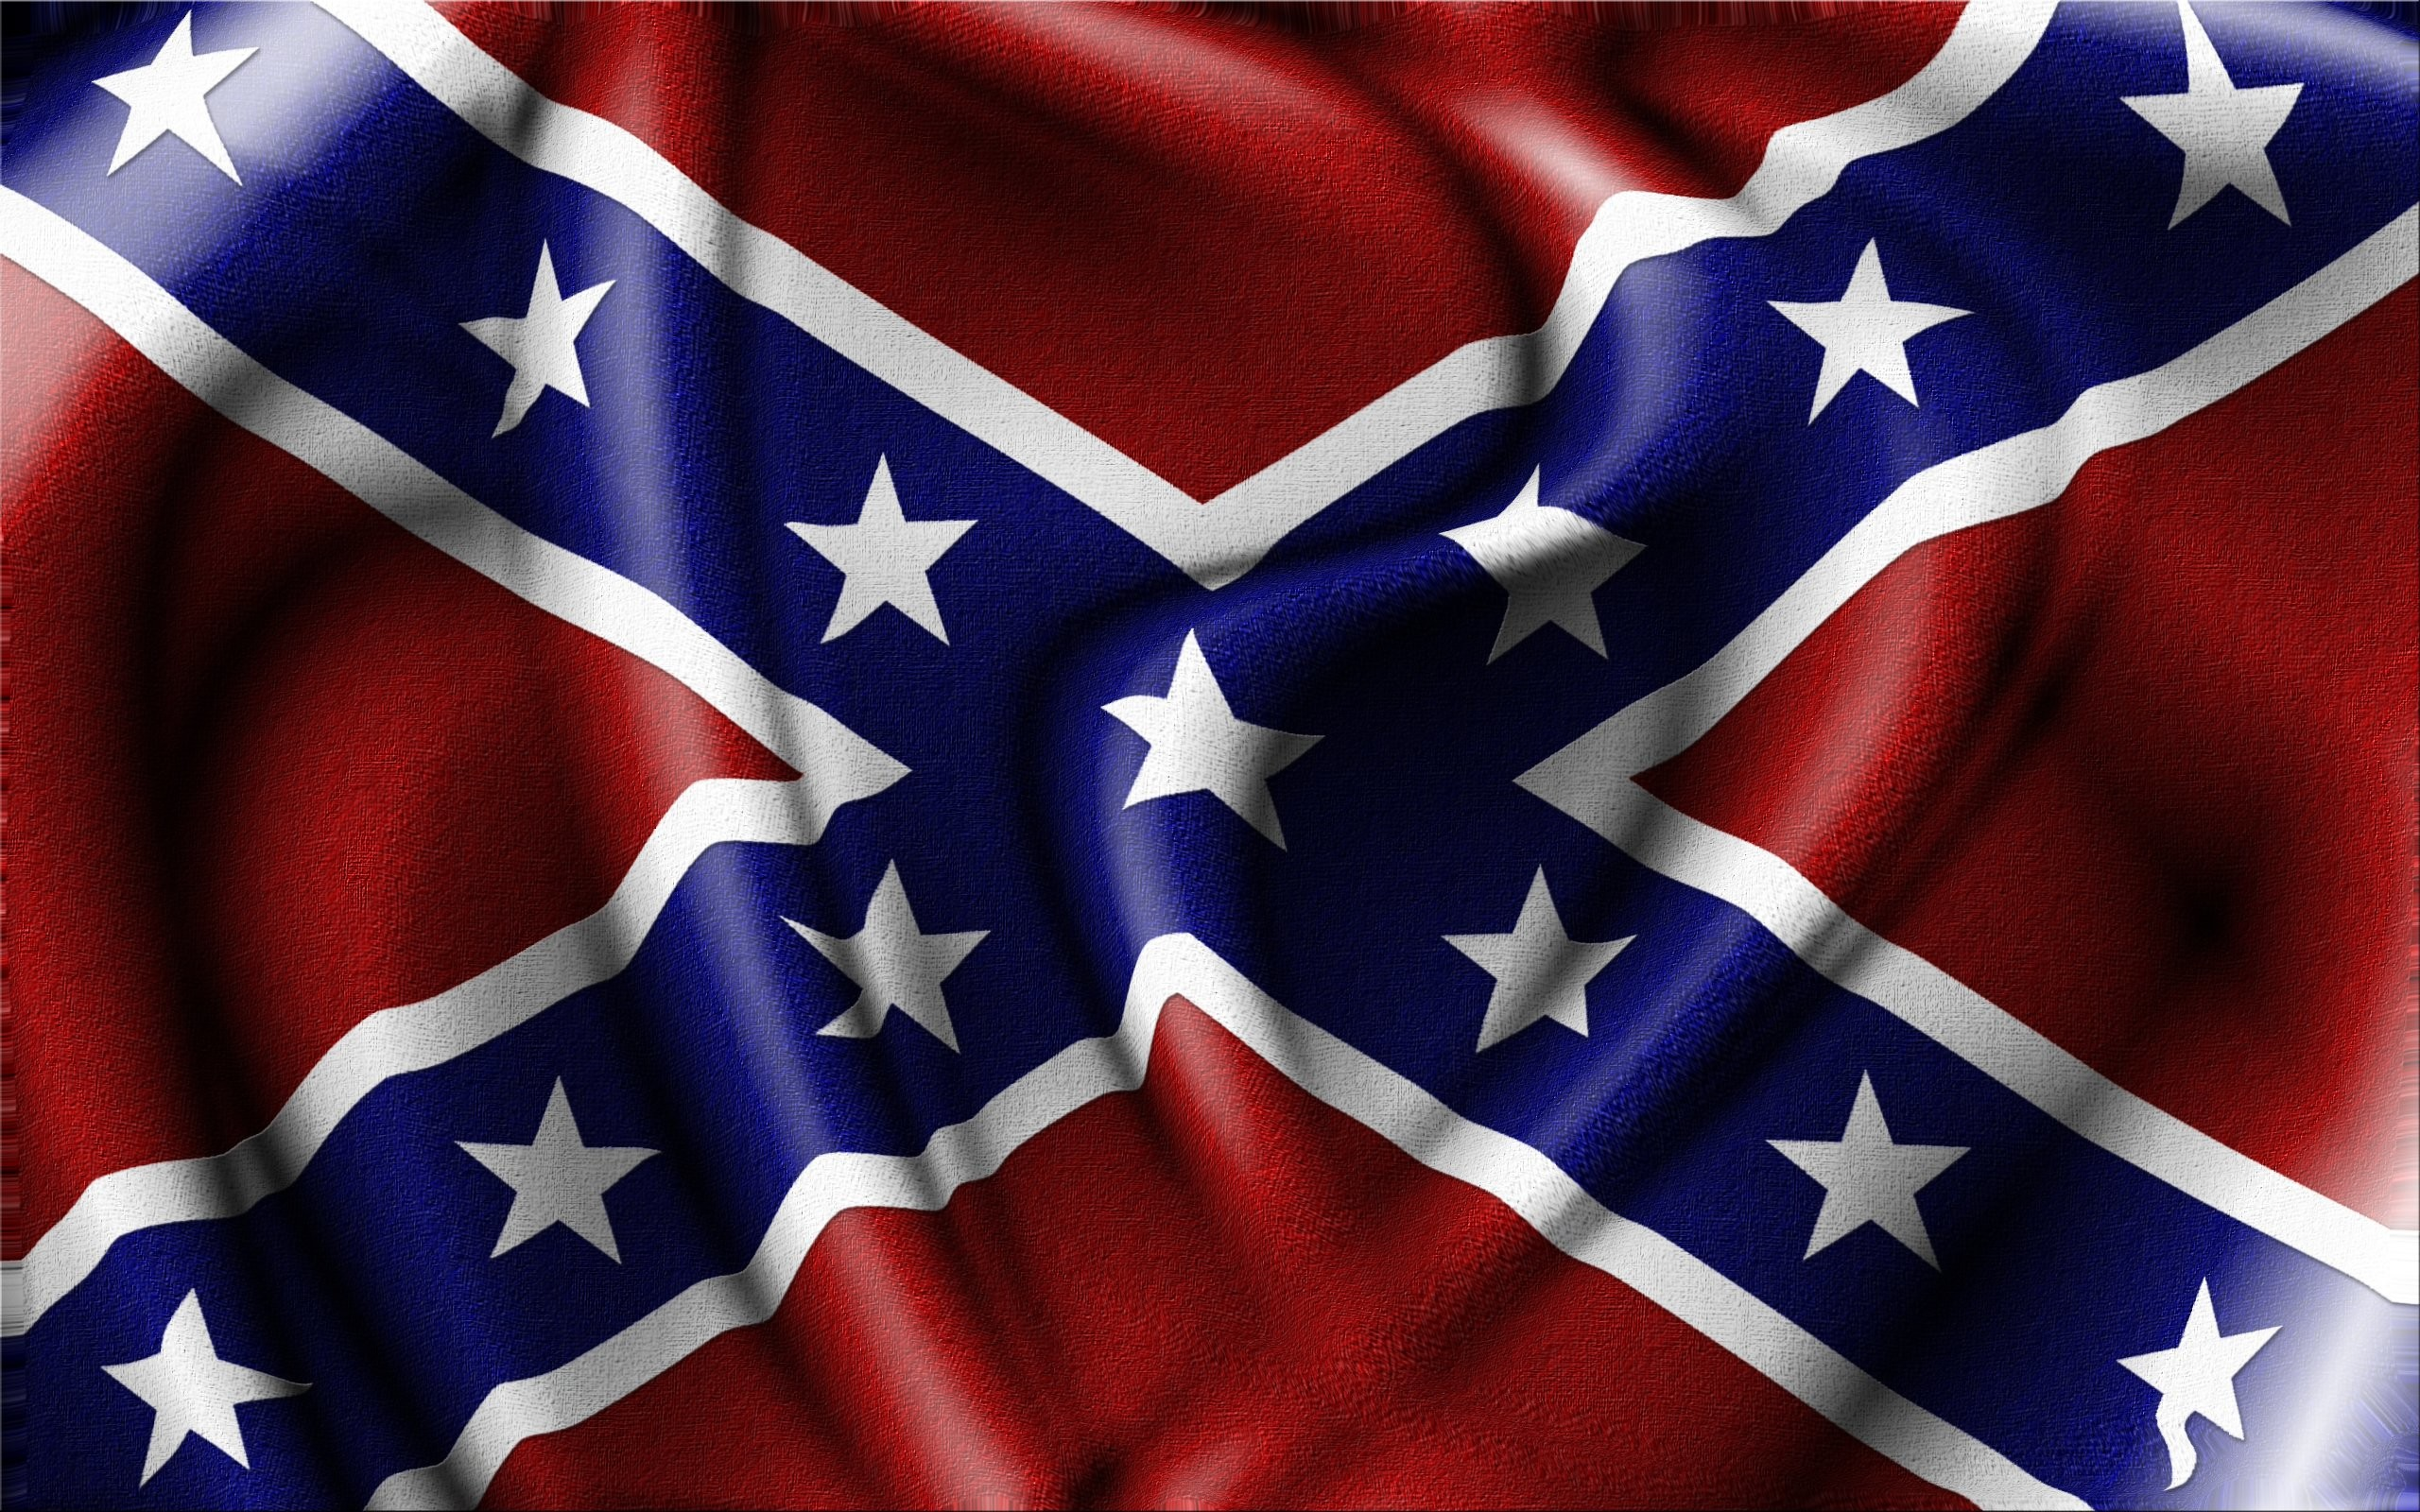 2560x1600 CONFEDERATE flag usa america united states csa civil war rebel .